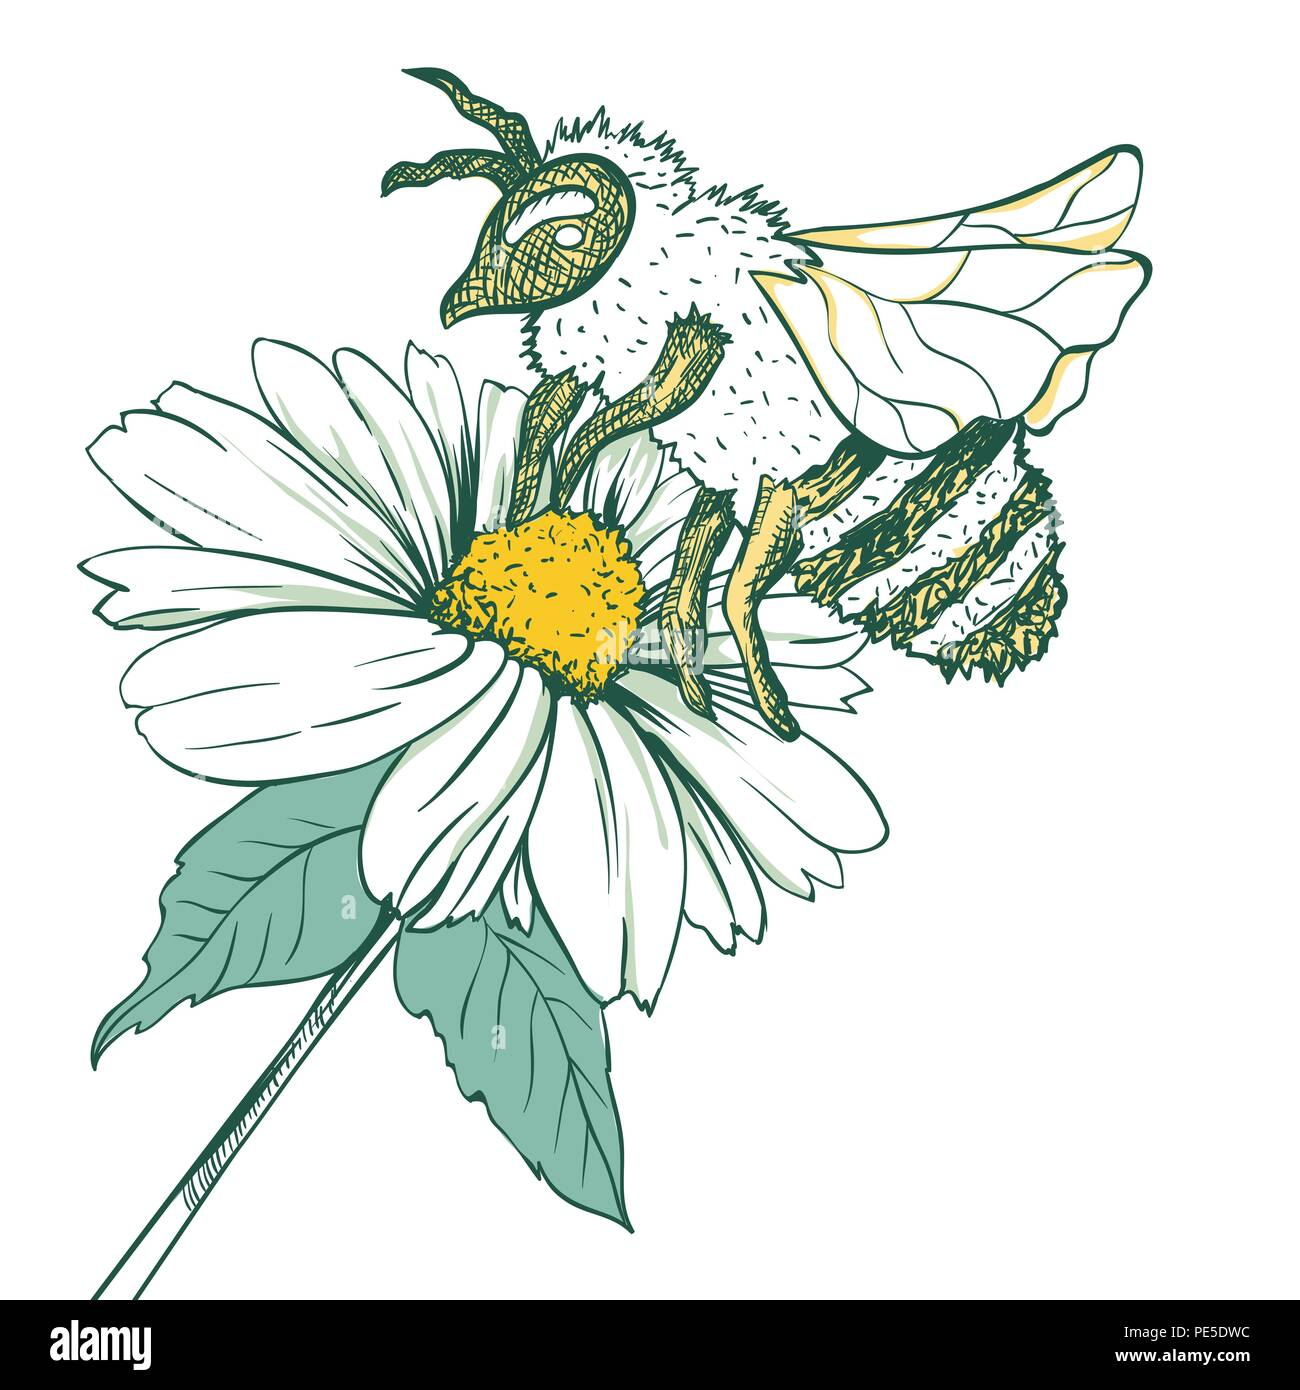 Entomology Sketch Illustration with Bee or Wasp and Camomile Flower. Blossoming and Pollination. Botanical or Medical Theme. Isolated on White Background Stock Vector